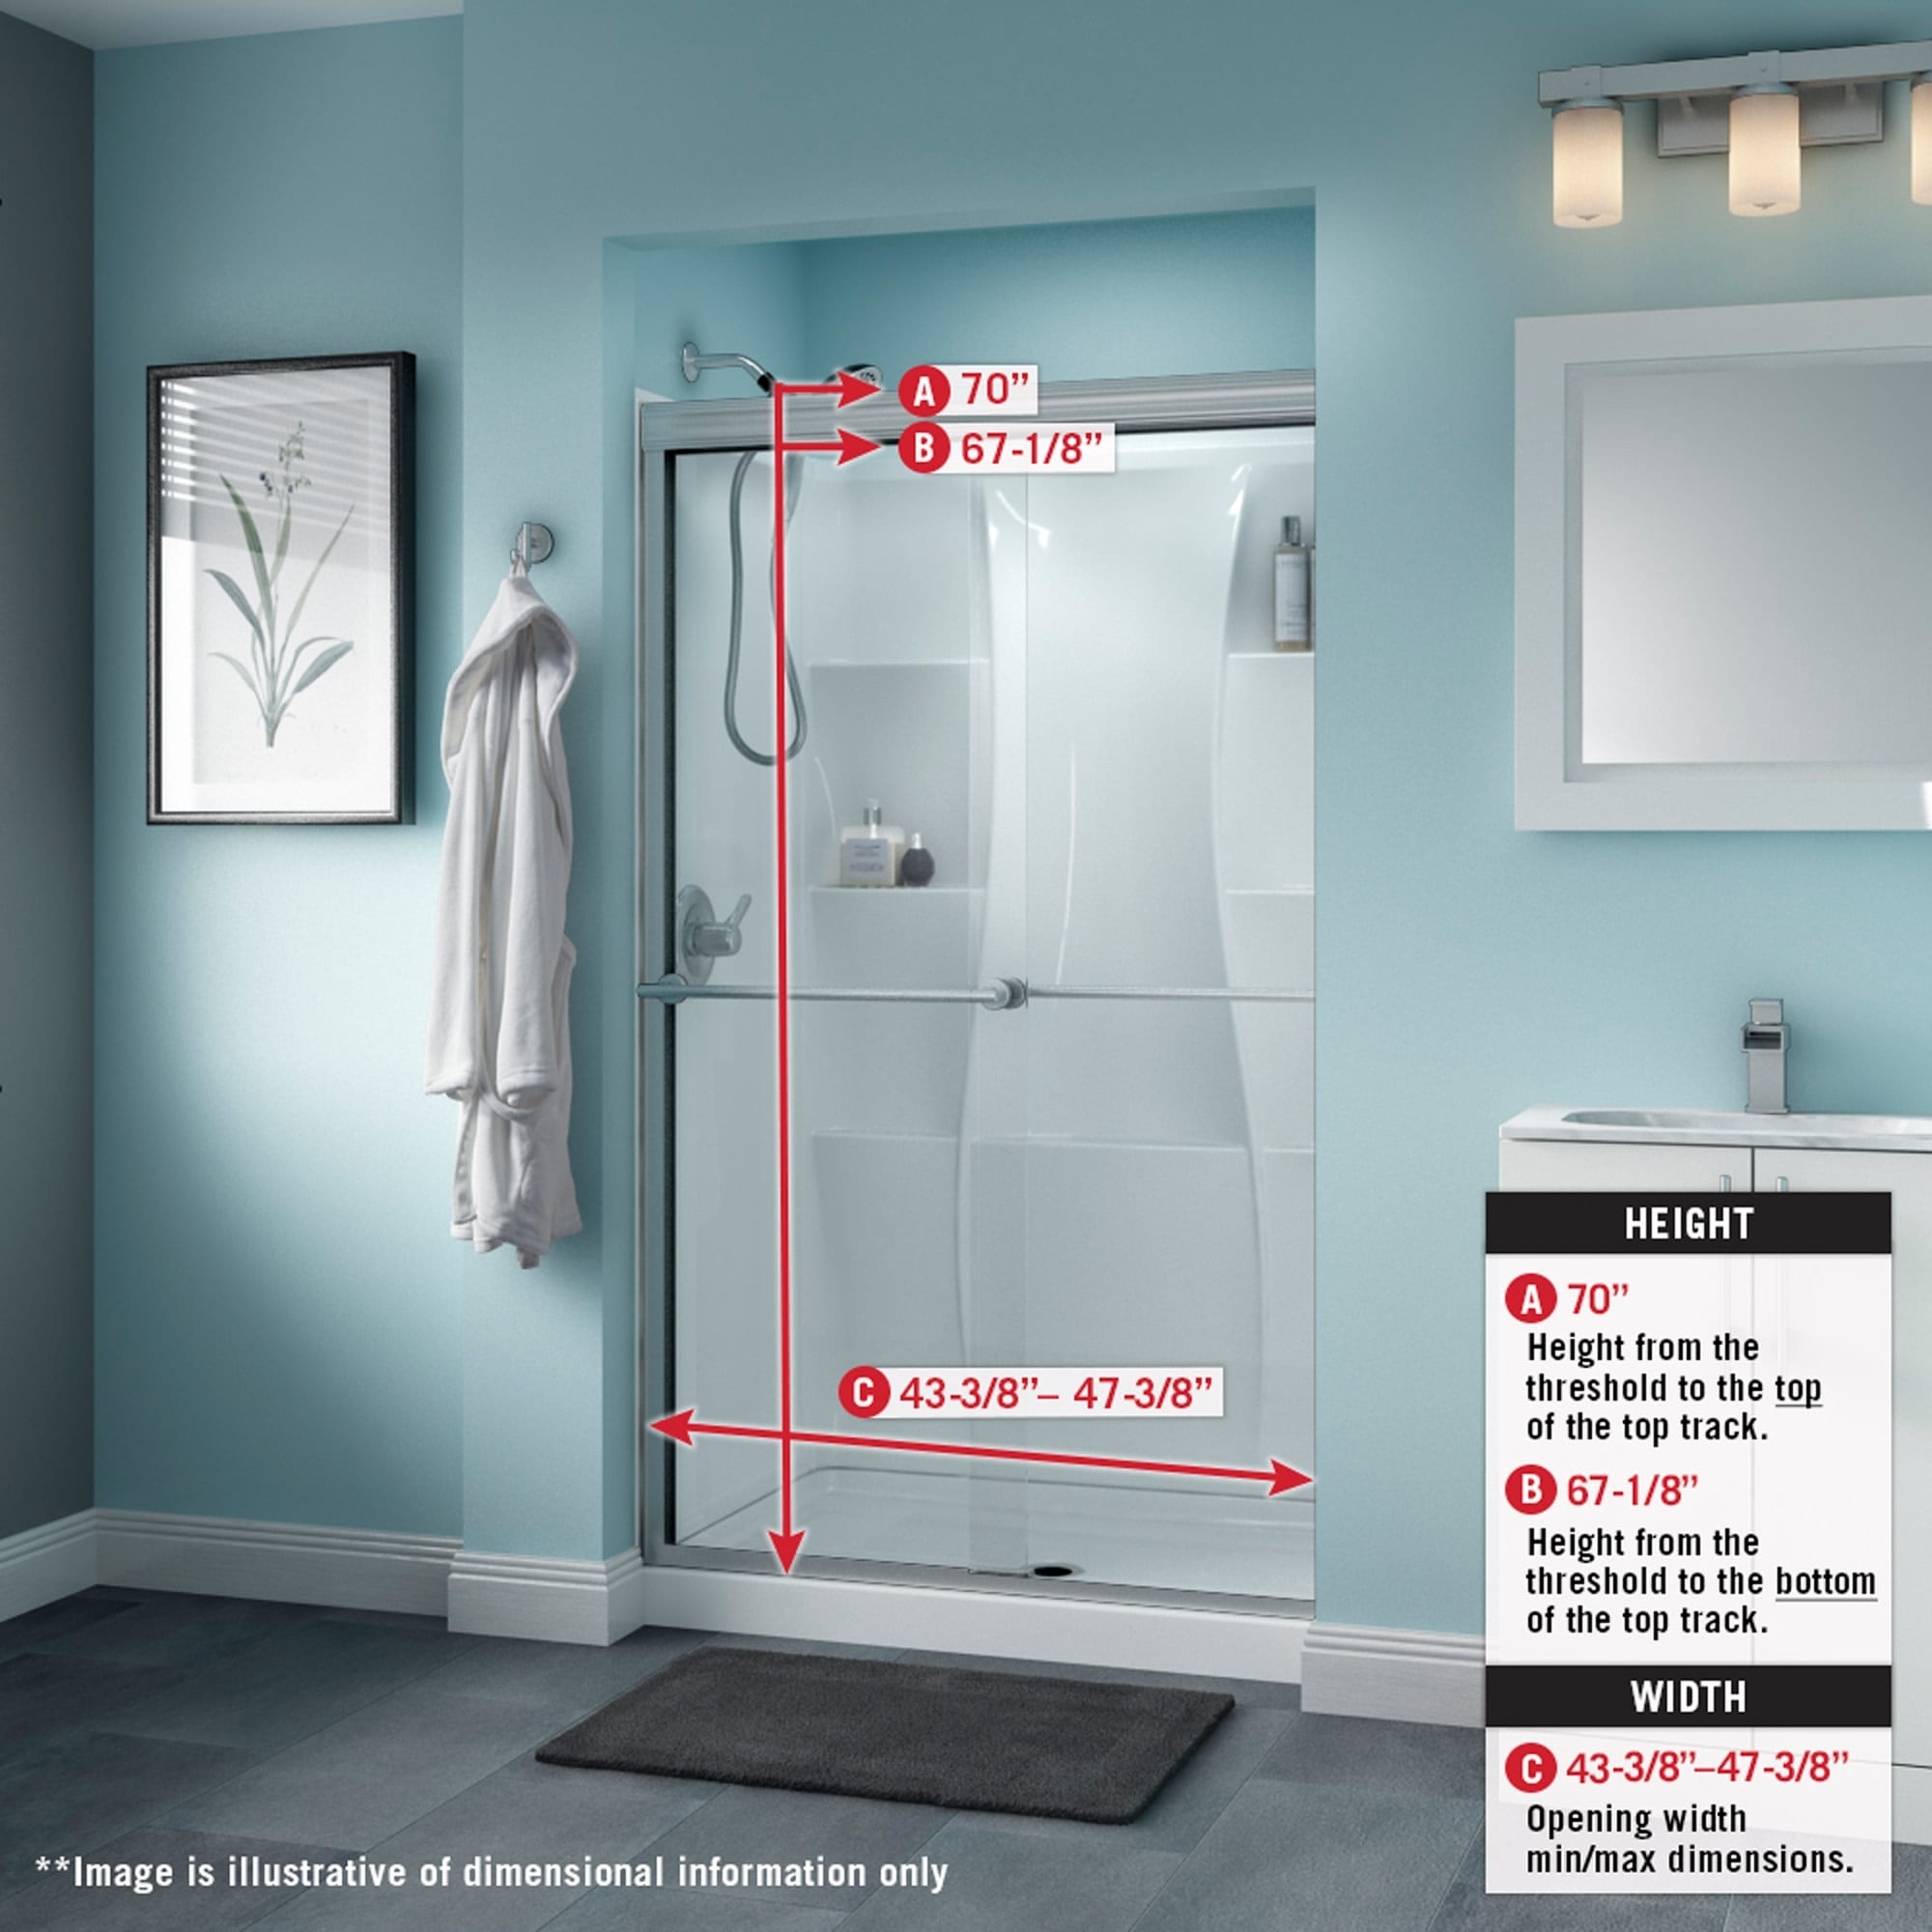 Delta Sd3276453 Trinsic 70 High X 47 3 8 Wide Sliding Semi Frameless Shower Door With Frosted Glass Chrome